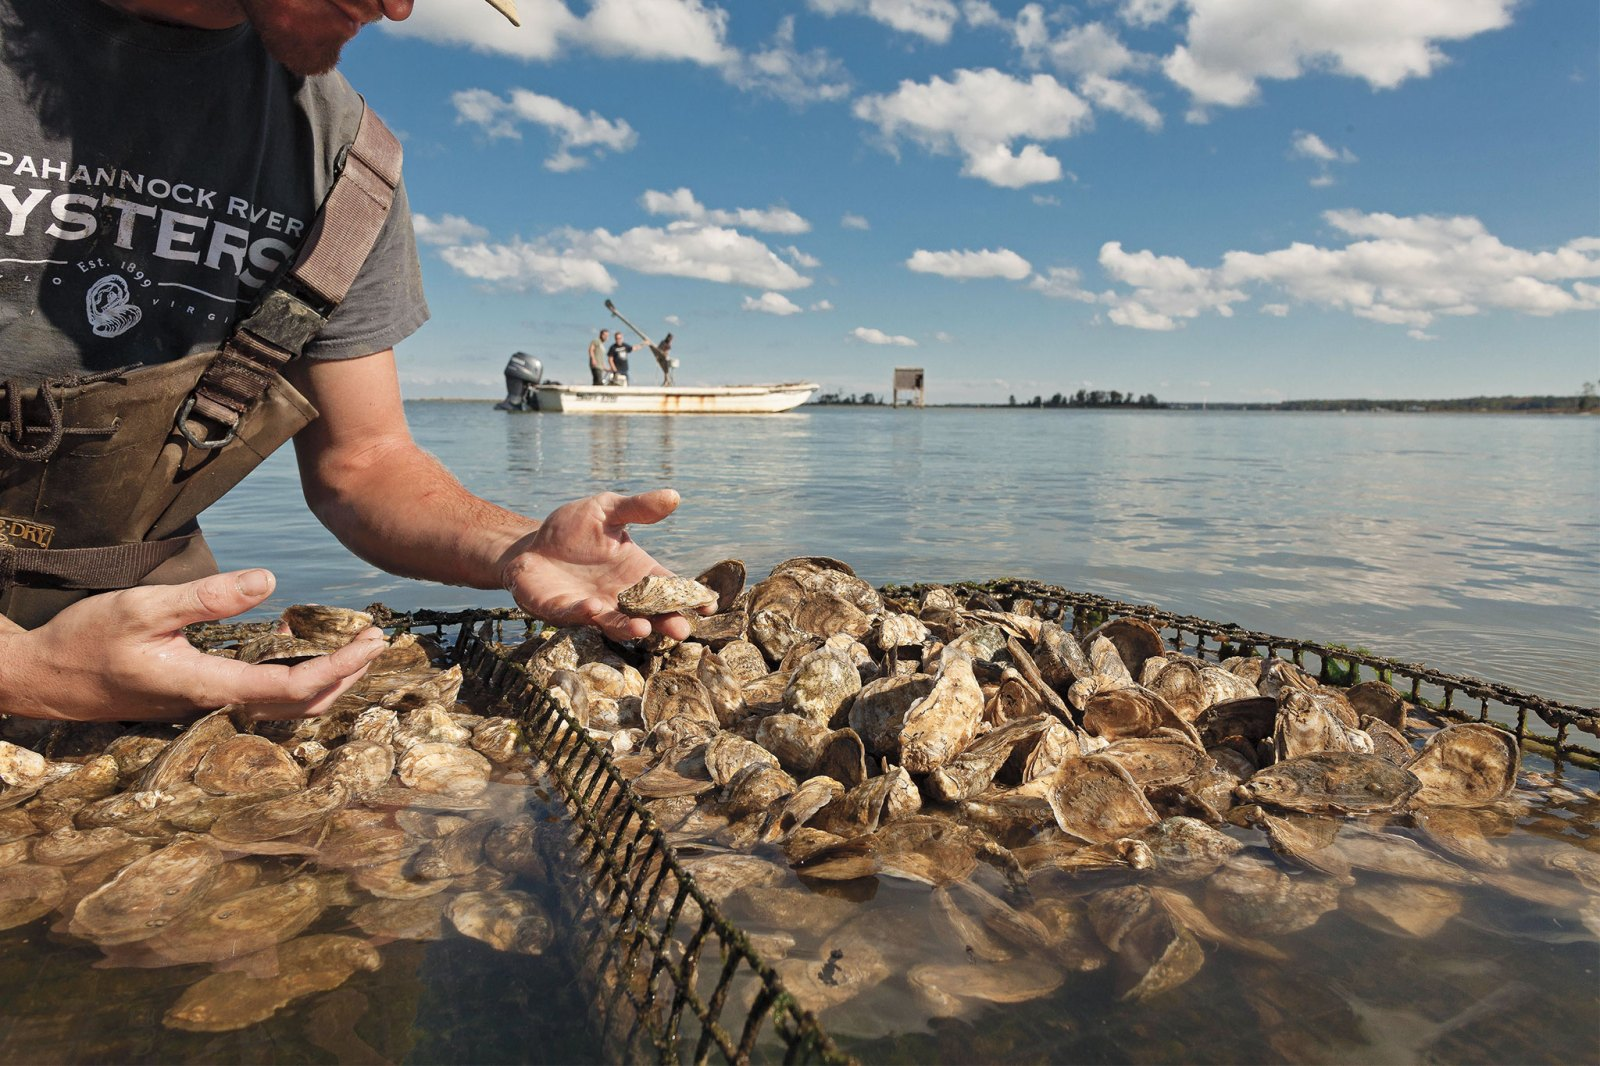 Man oyster farming, holding oyster in hand with boat in the background